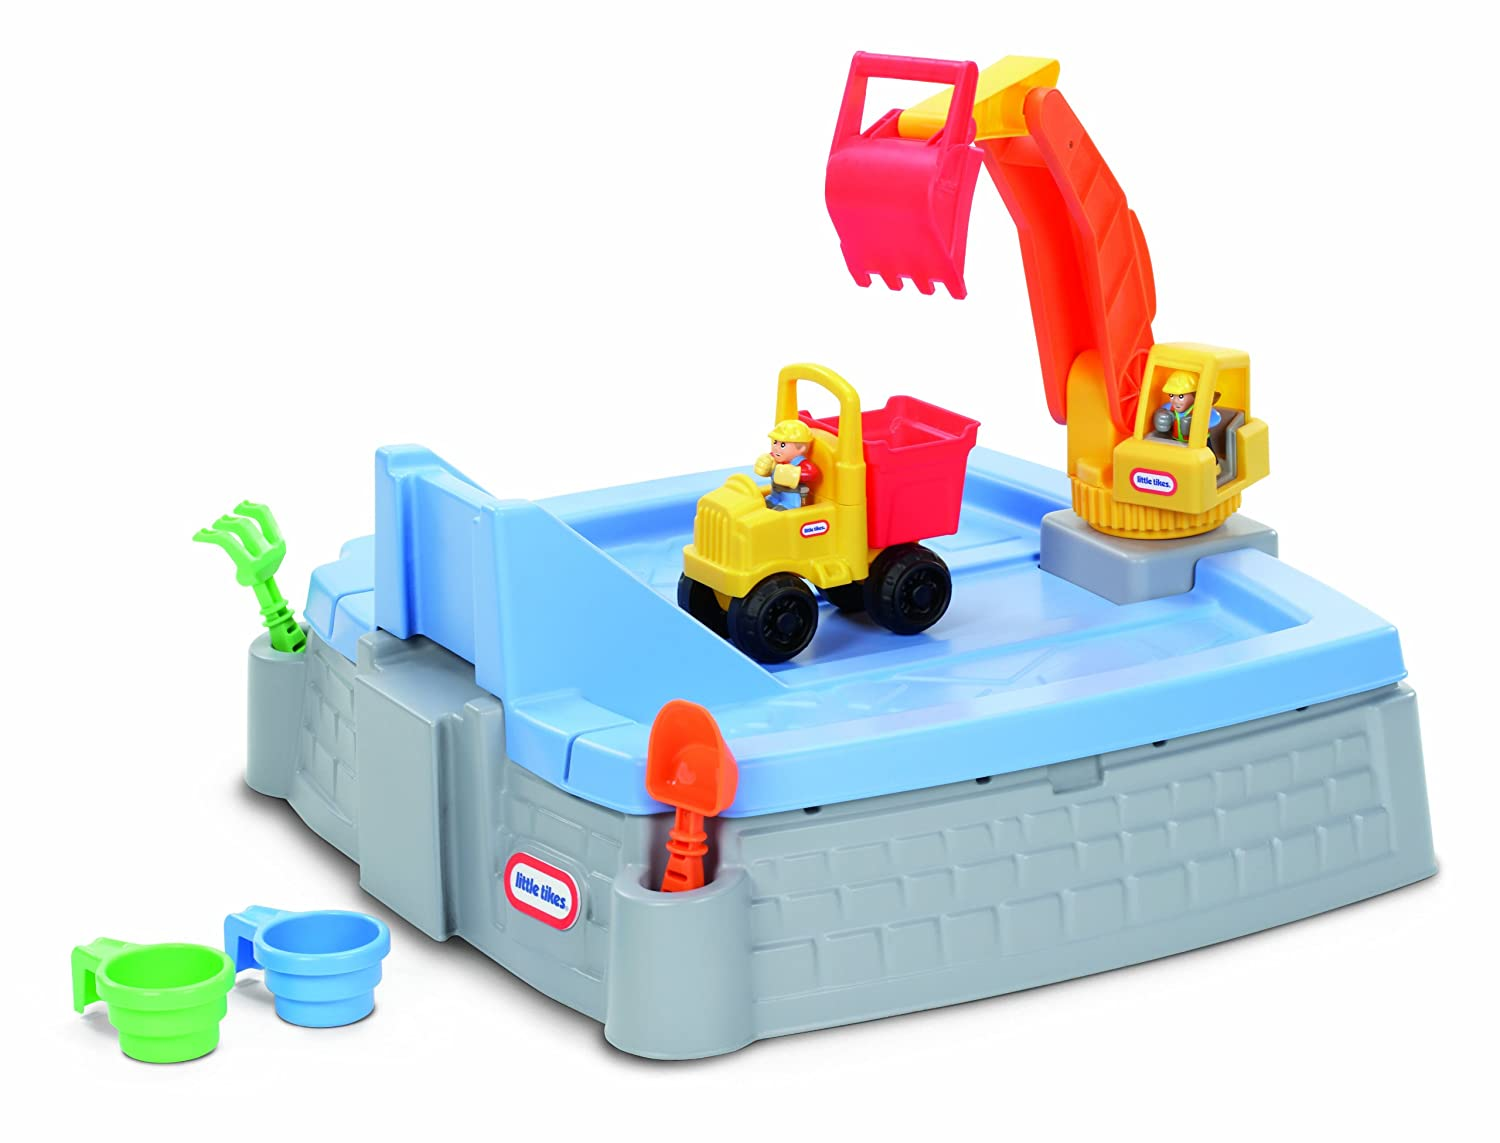 Amazon.com: Little Tikes Big Digger Sandbox: Toys & Games